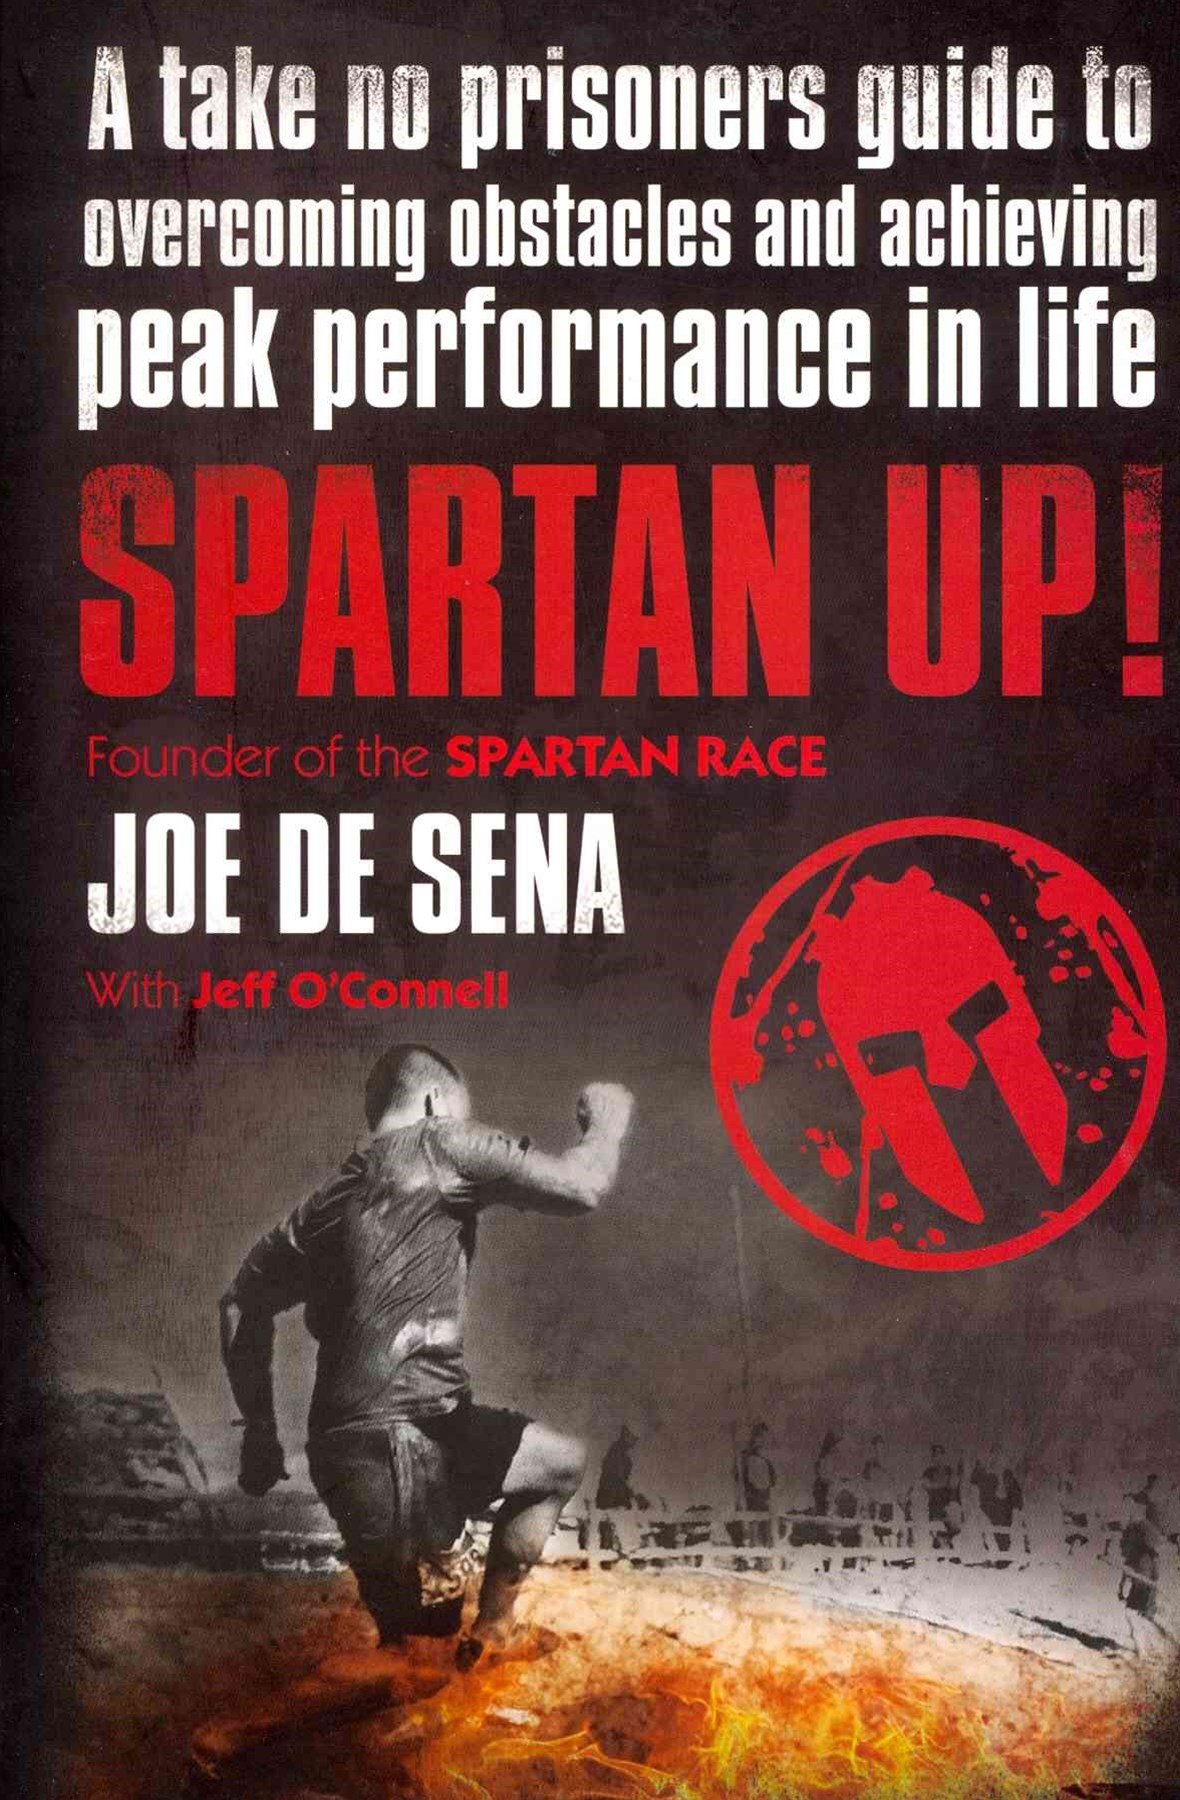 Spartan Up!: A Take-No-Prisoners Guide to Overcoming Obstacles and      Achieving Peak Performance